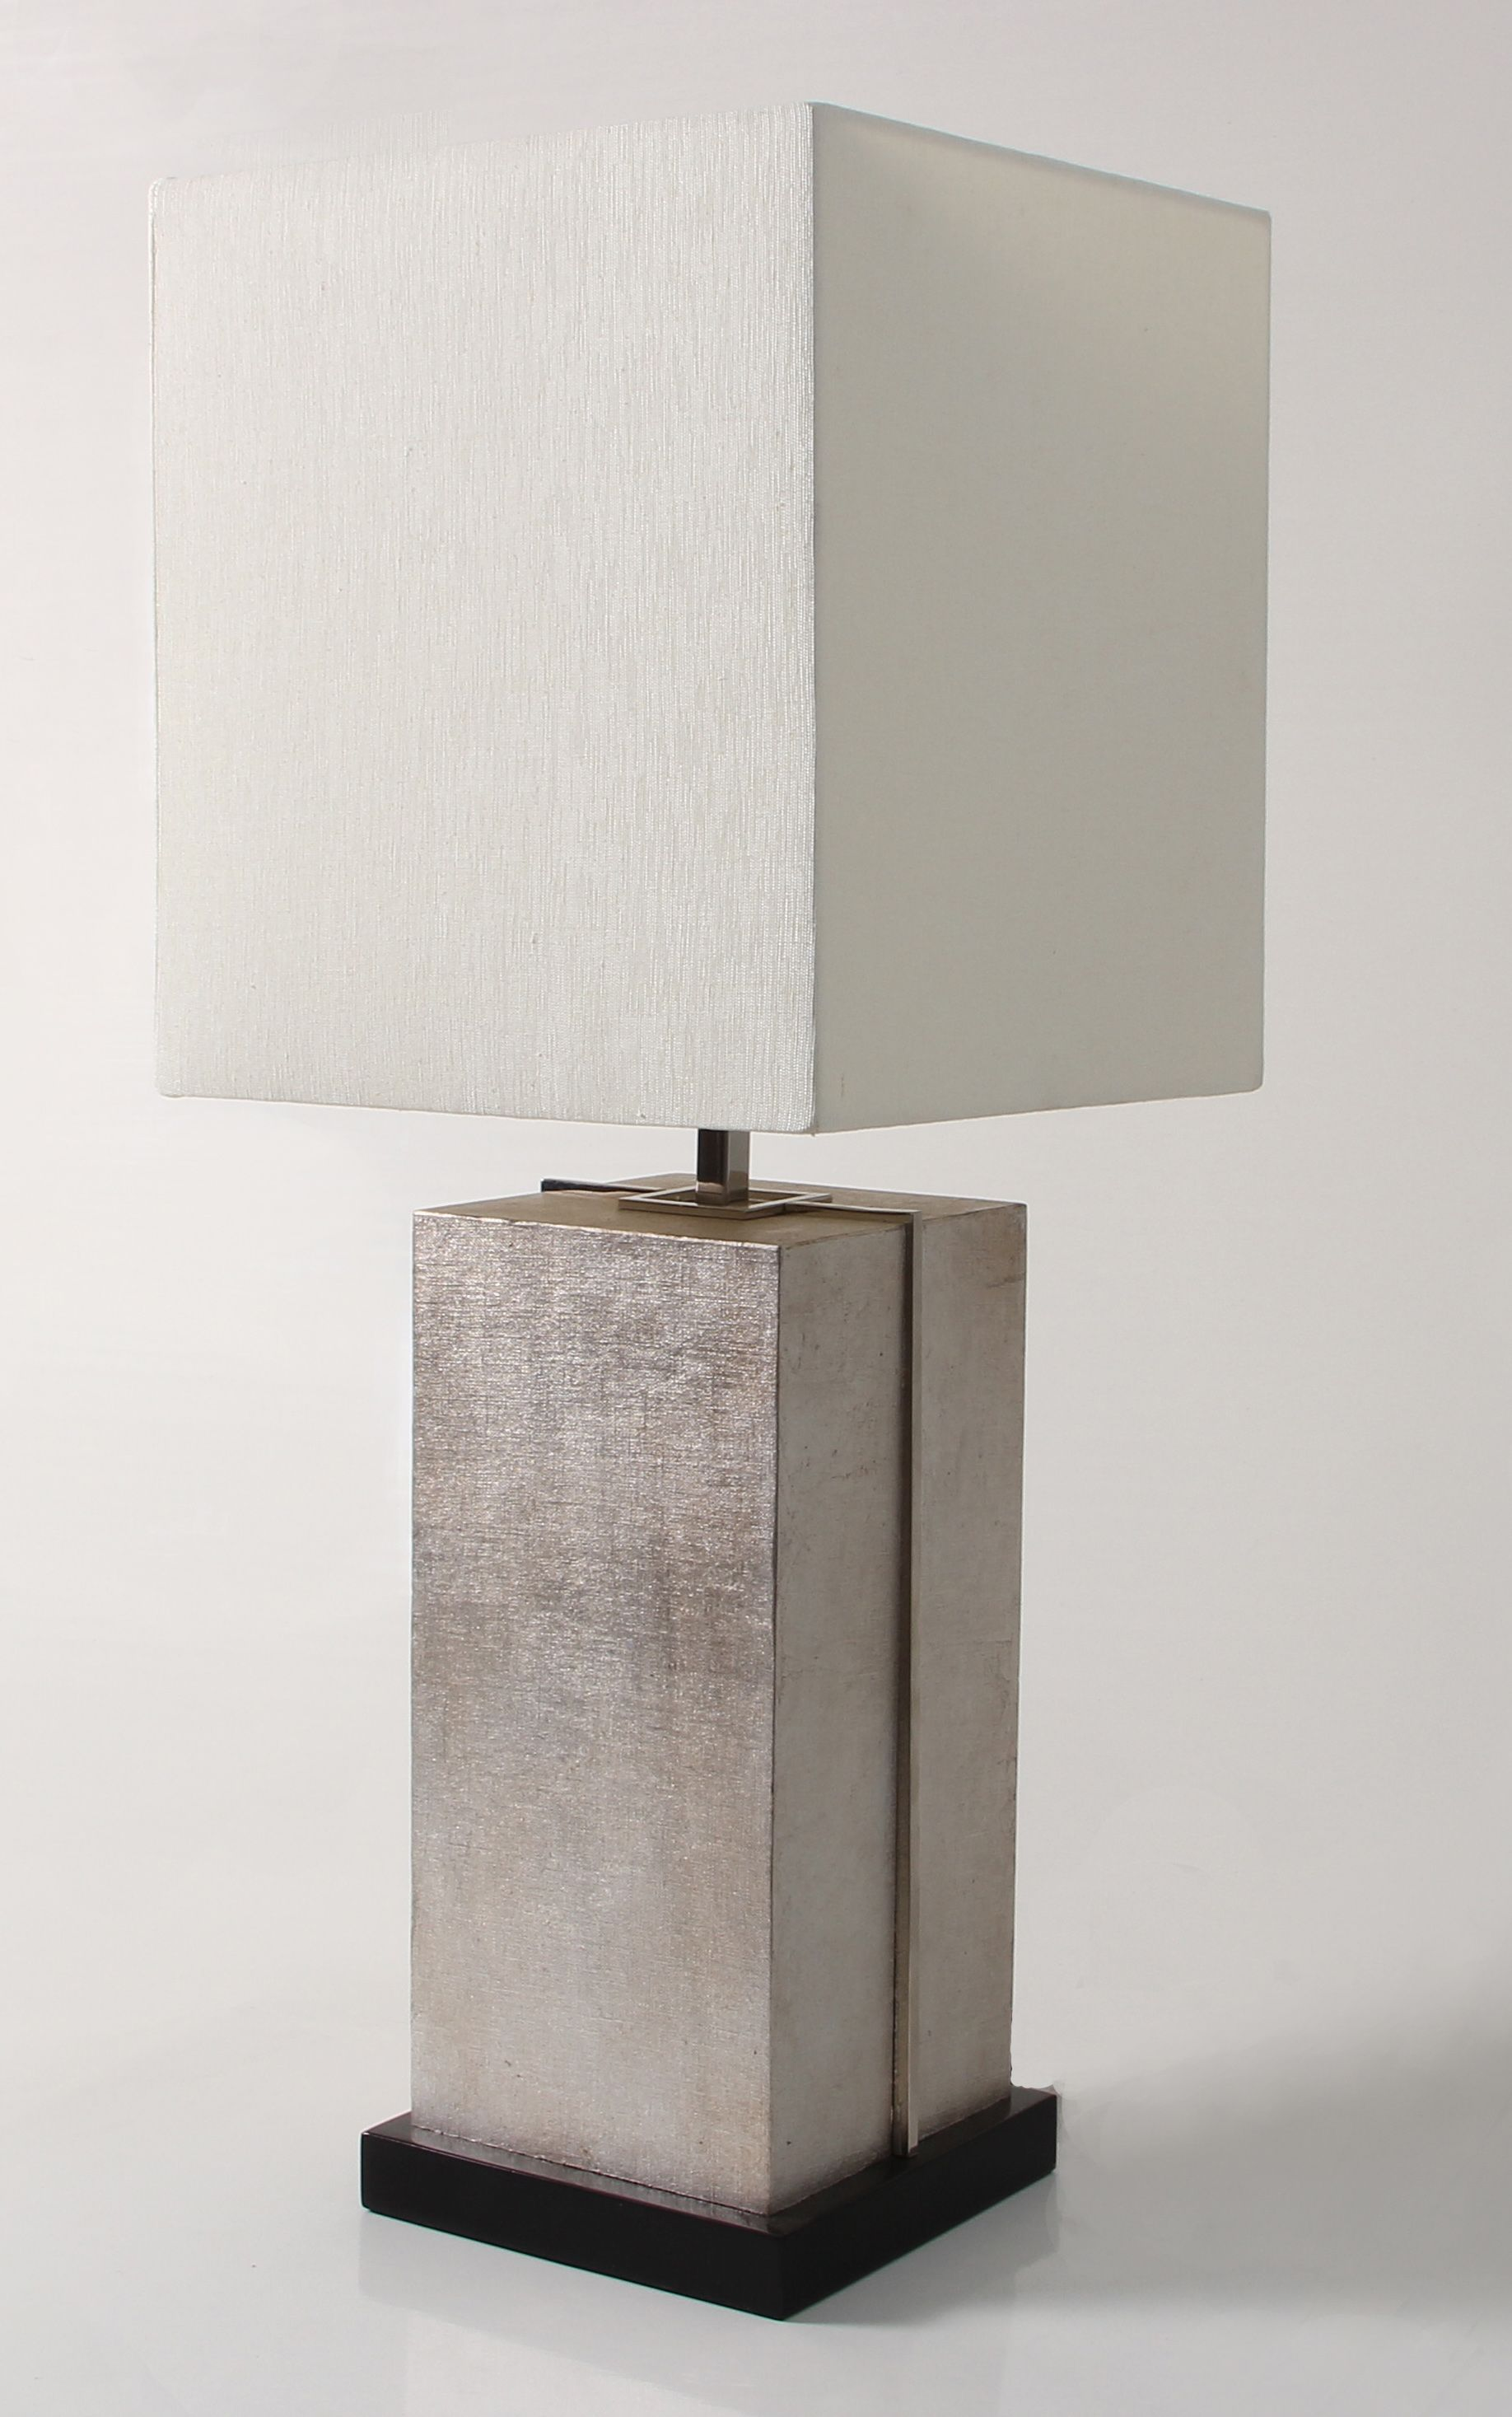 The larken lamp is a stylish table lamp design made from stainless the larken lamp is a stylish table lamp design made from stainless steel and antiqued silver geotapseo Image collections